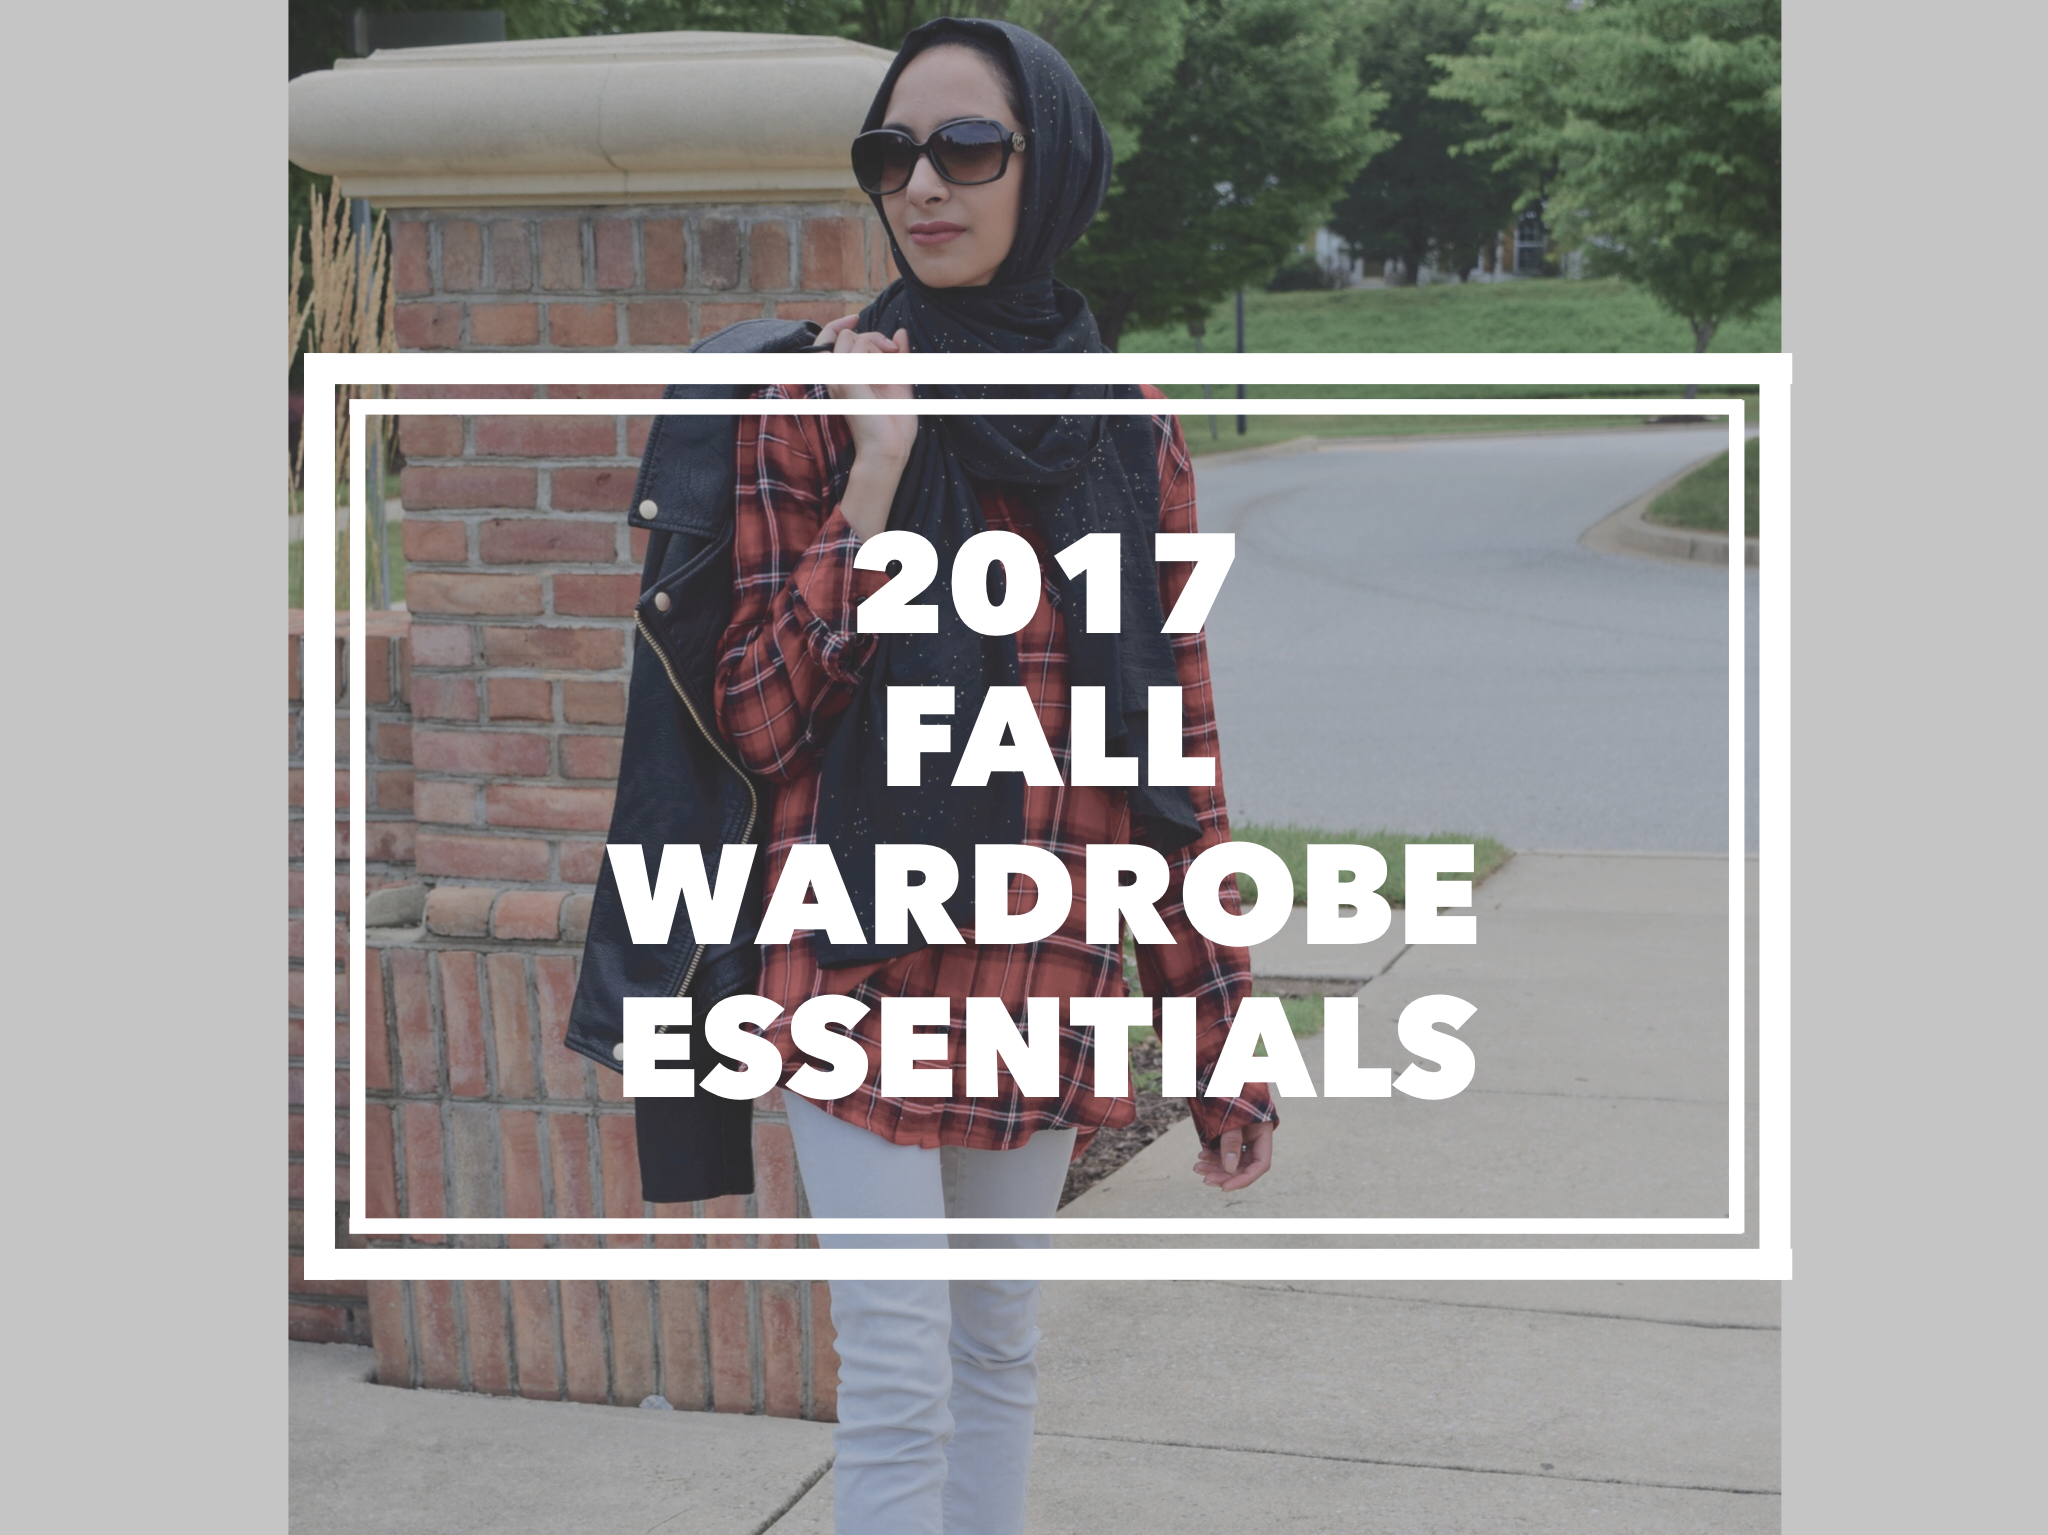 Fall Wardrobe Essentials 2017